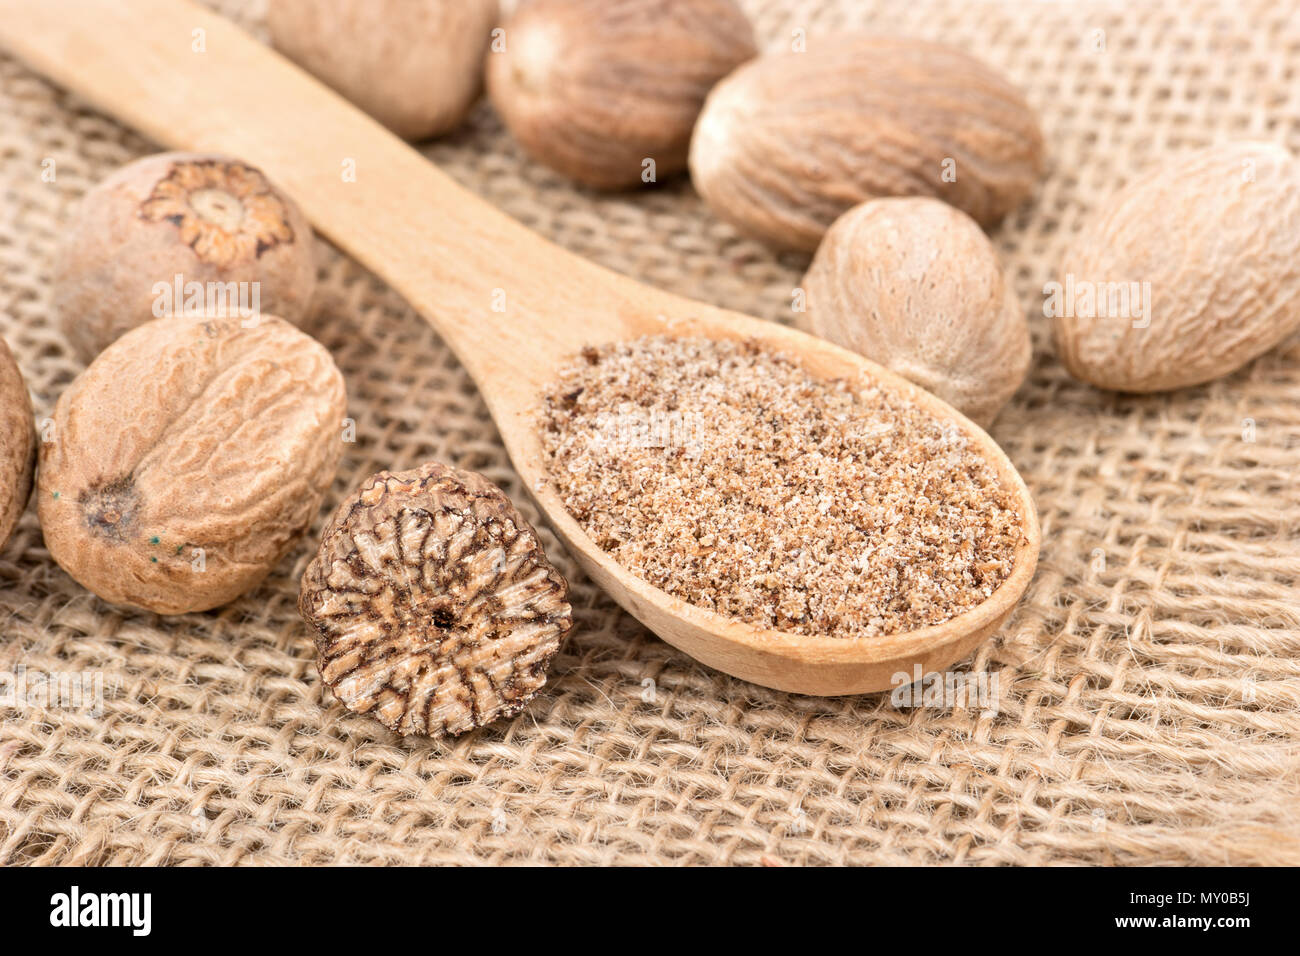 Spice nutmeg in the spoon with scattered nuts on burlap - Stock Image